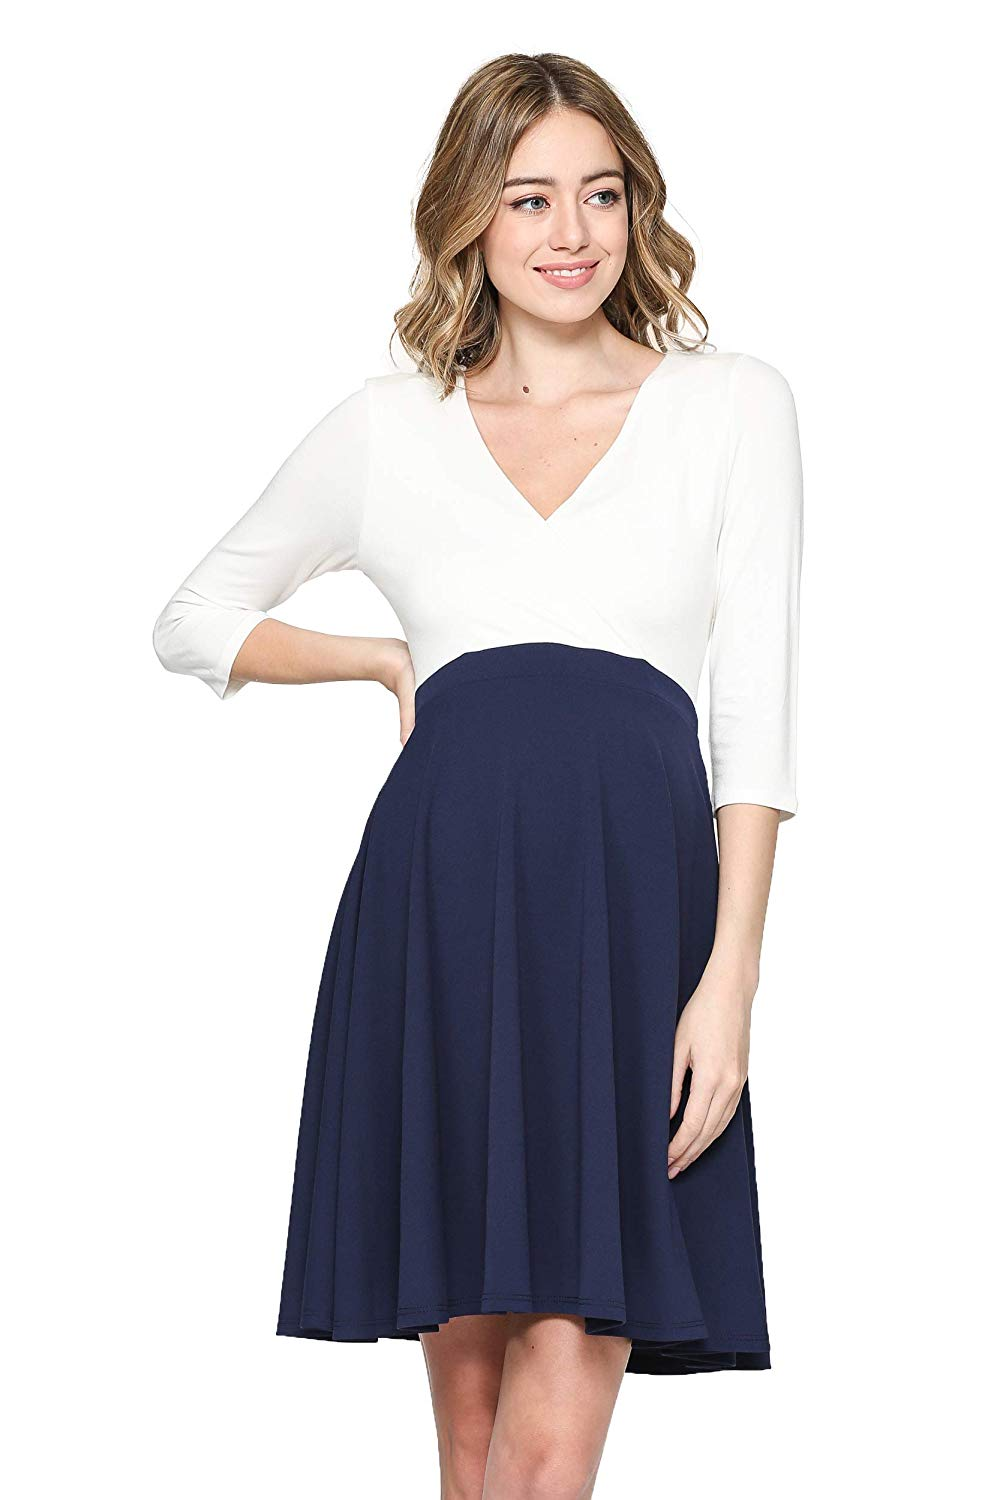 3/4 sleeves white and navy maternity dress